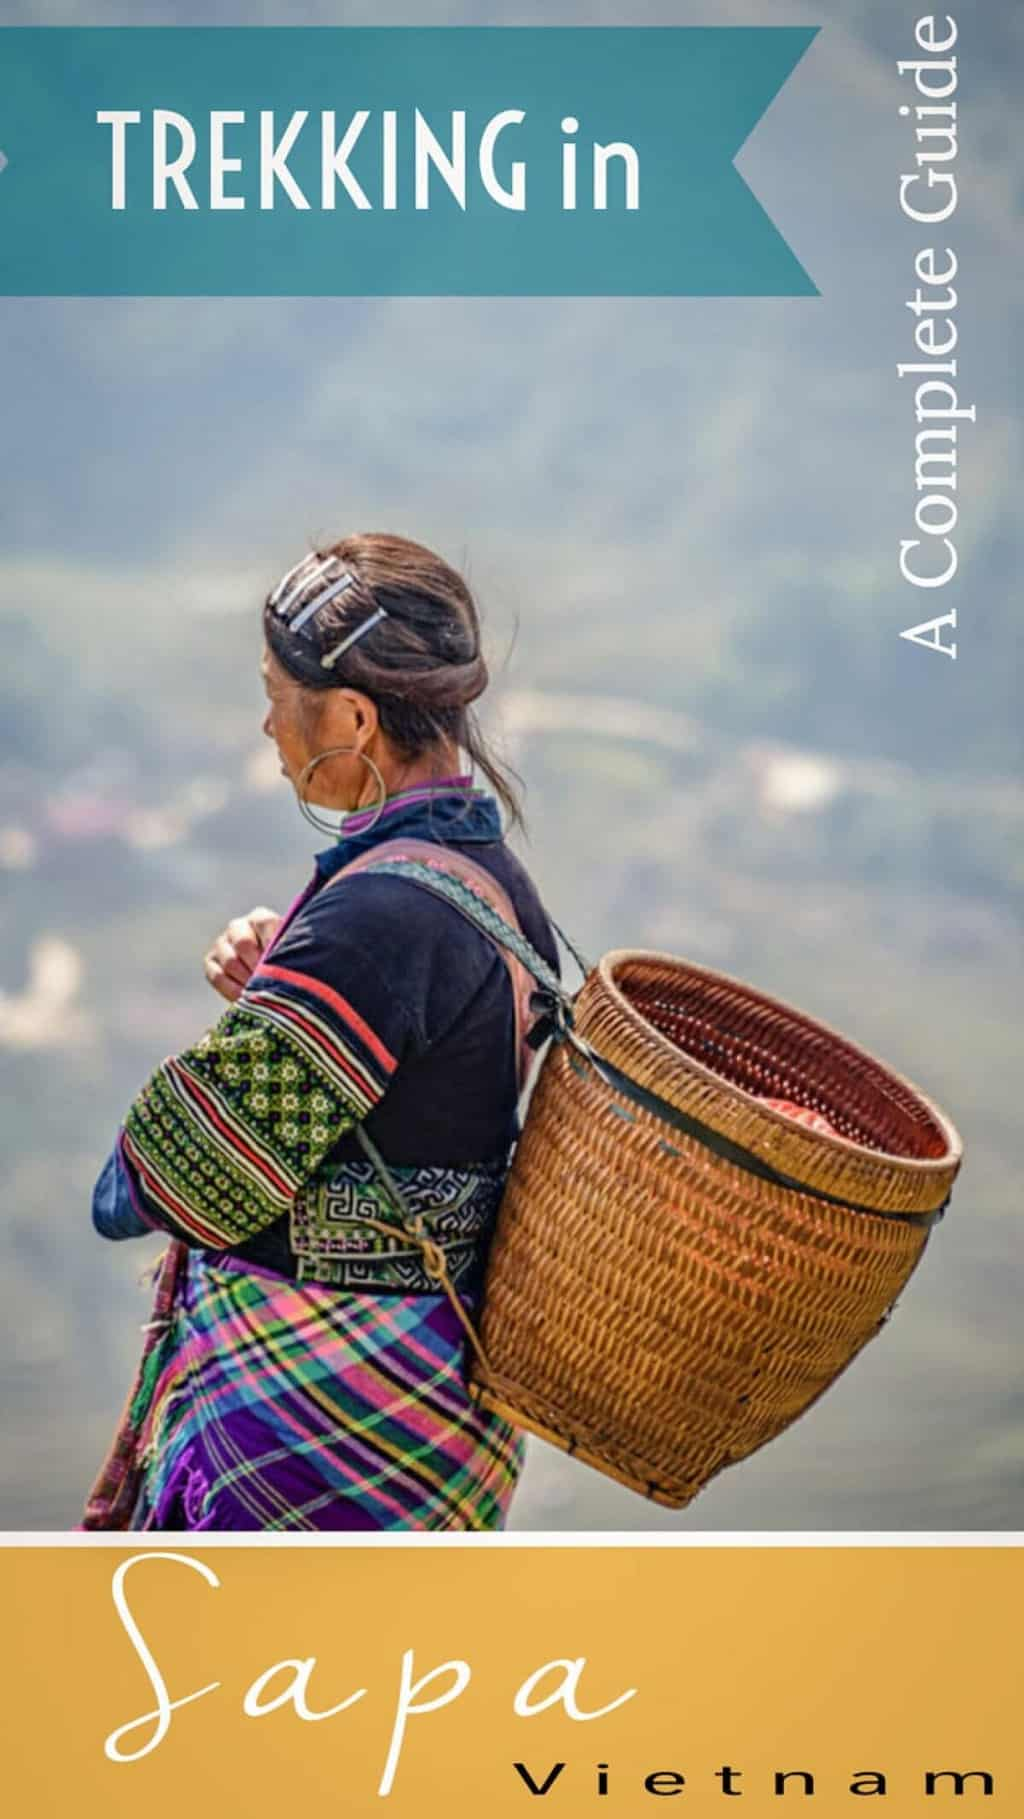 A Guide to Trekking in the Mountains of Sapa Vietnam [With packing guide and video] - Trekking in Sapa is a must do on every Vietnam itinerary. #vietnam #sapa